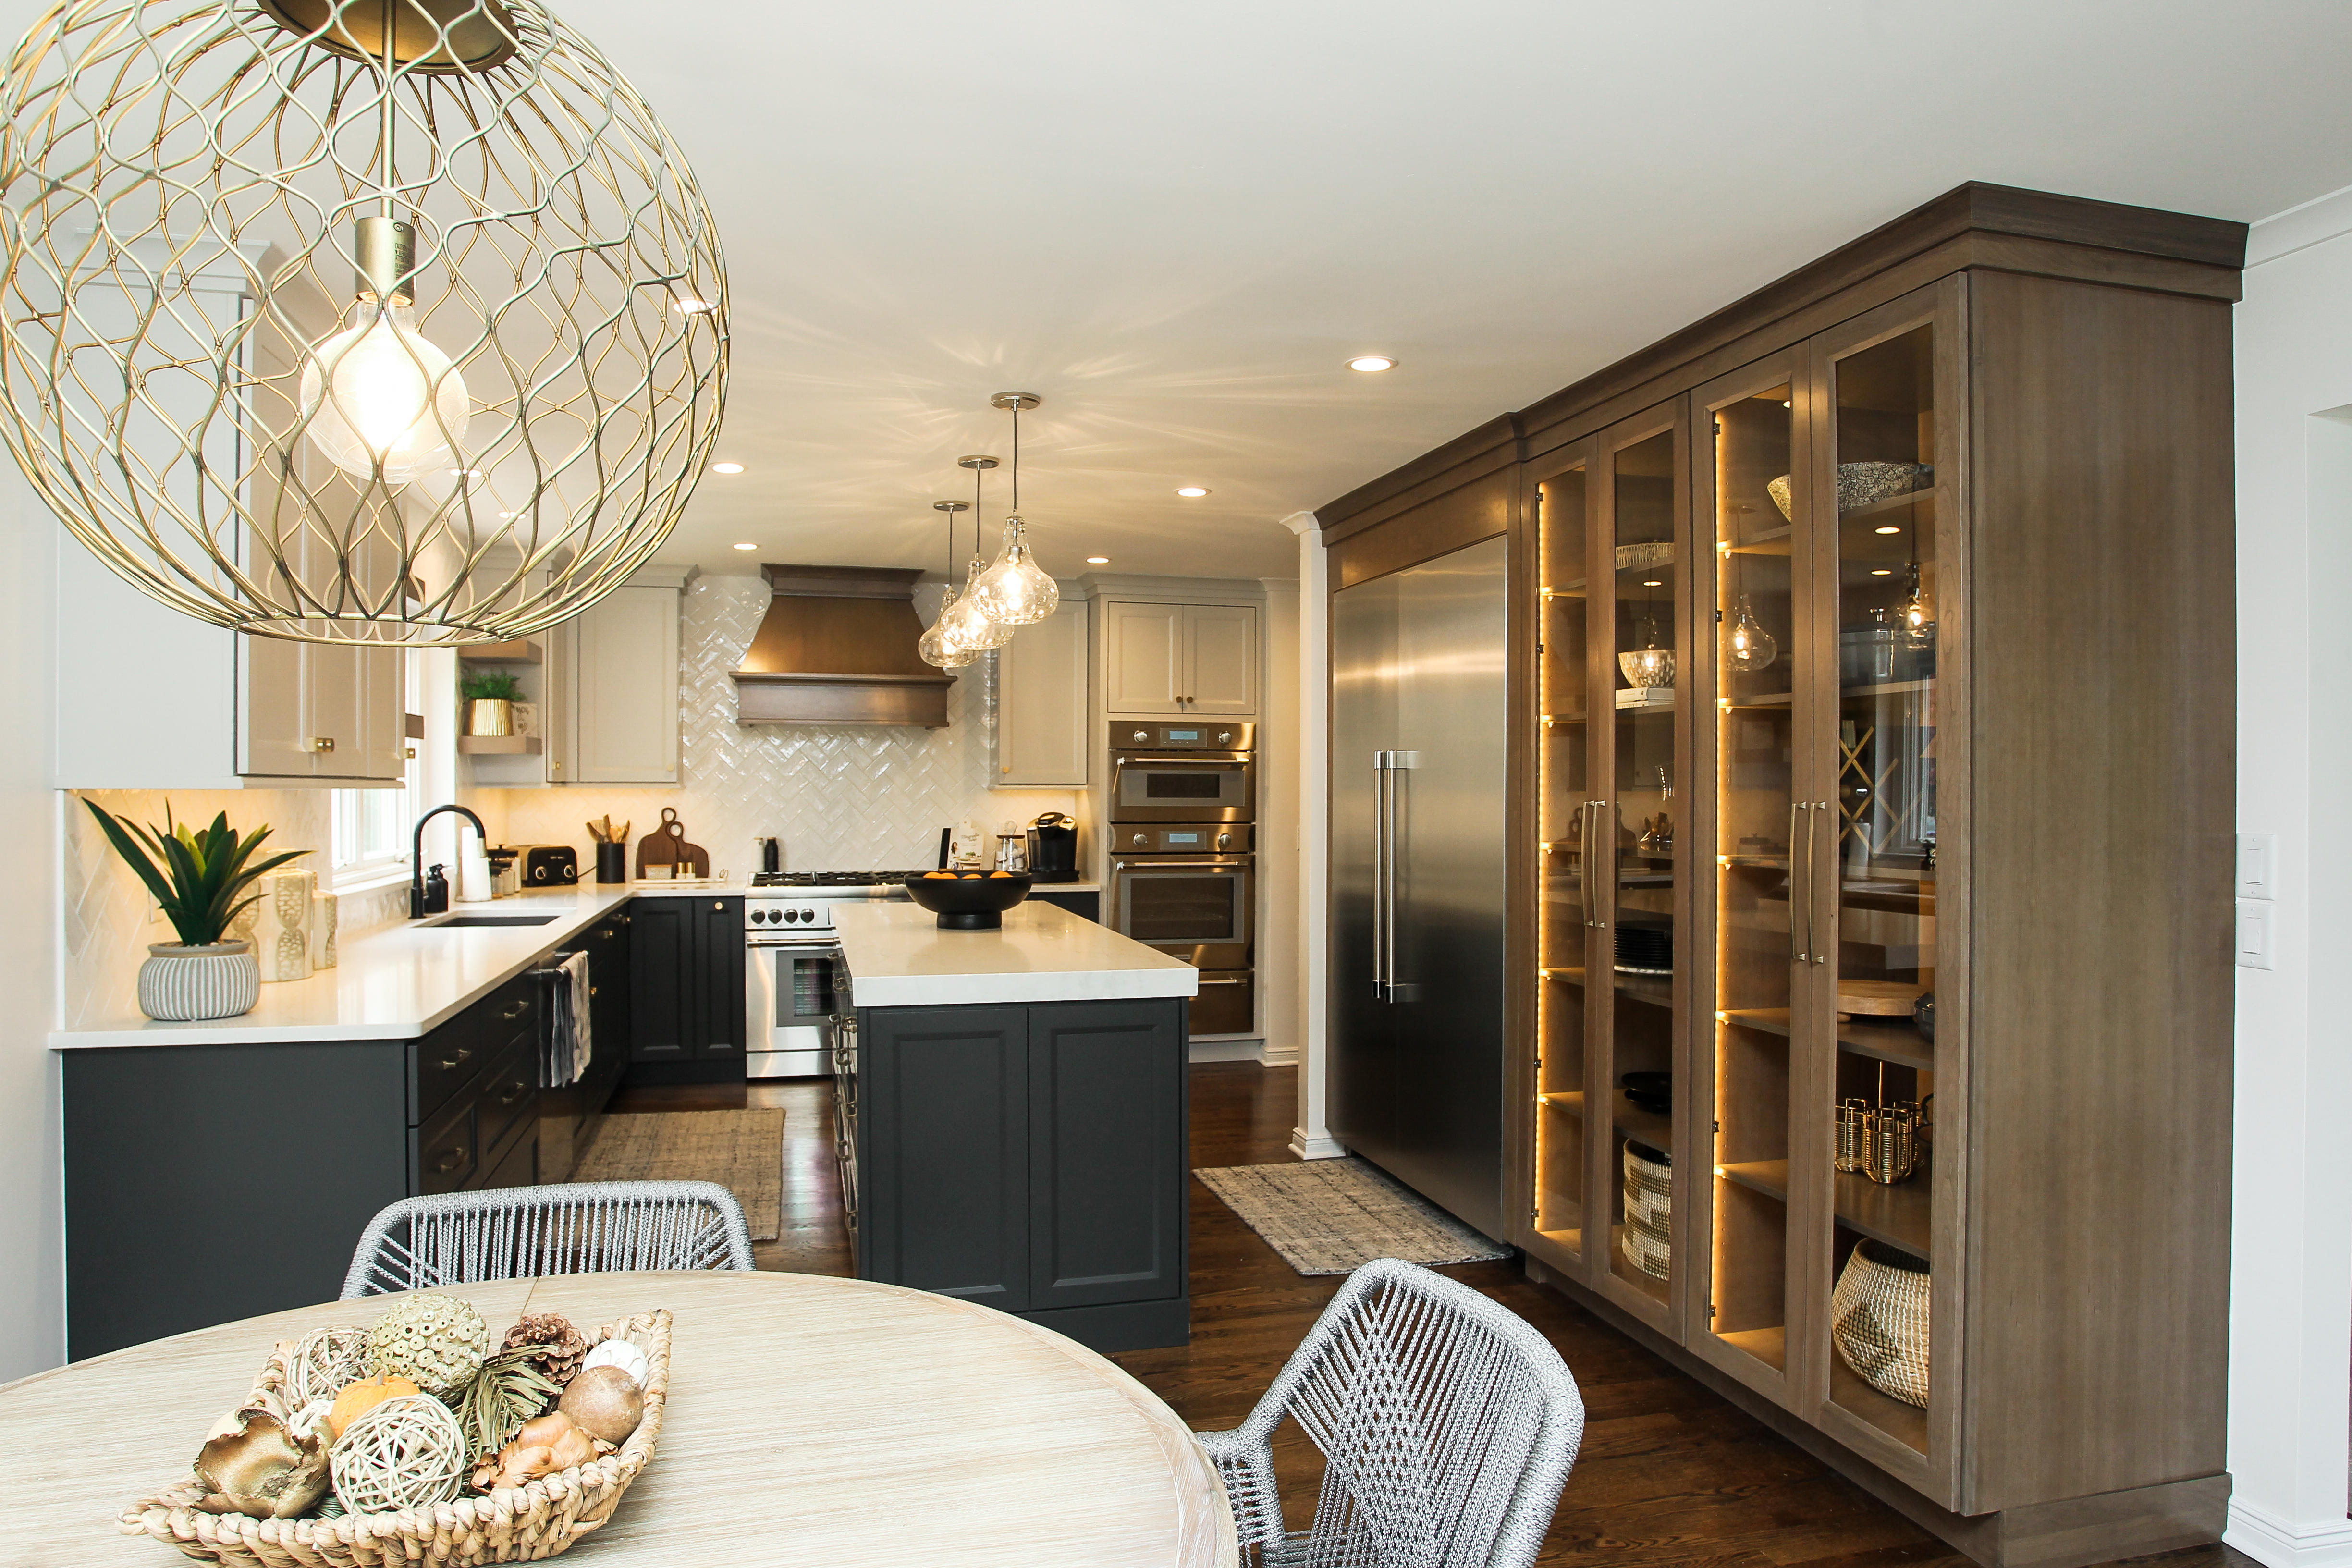 Dura Supreme Cabinetry - Shelby Township